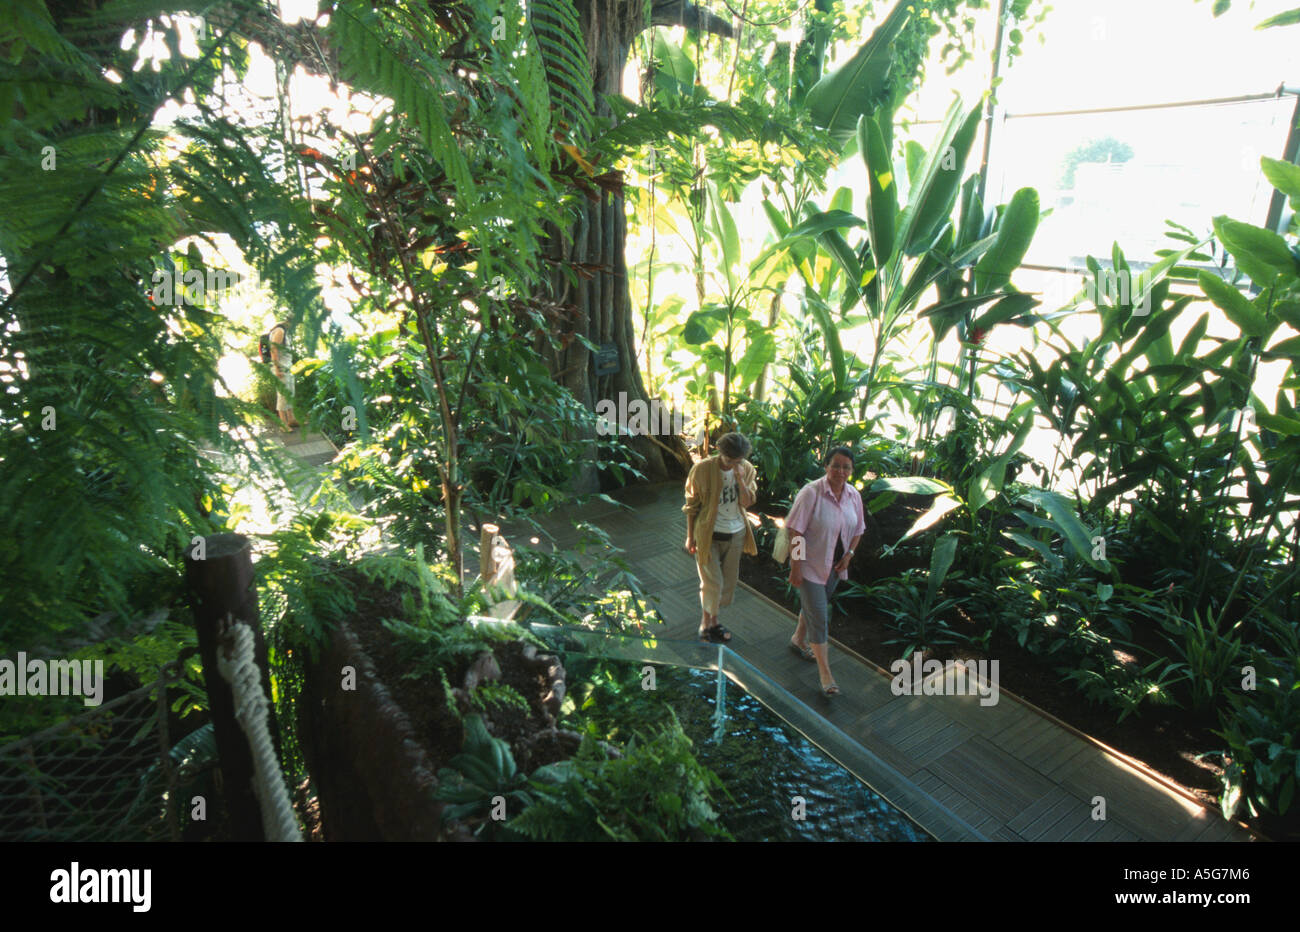 Tropical greenhouse serre tropicale aquarium la rochelle for Aquarium bassin